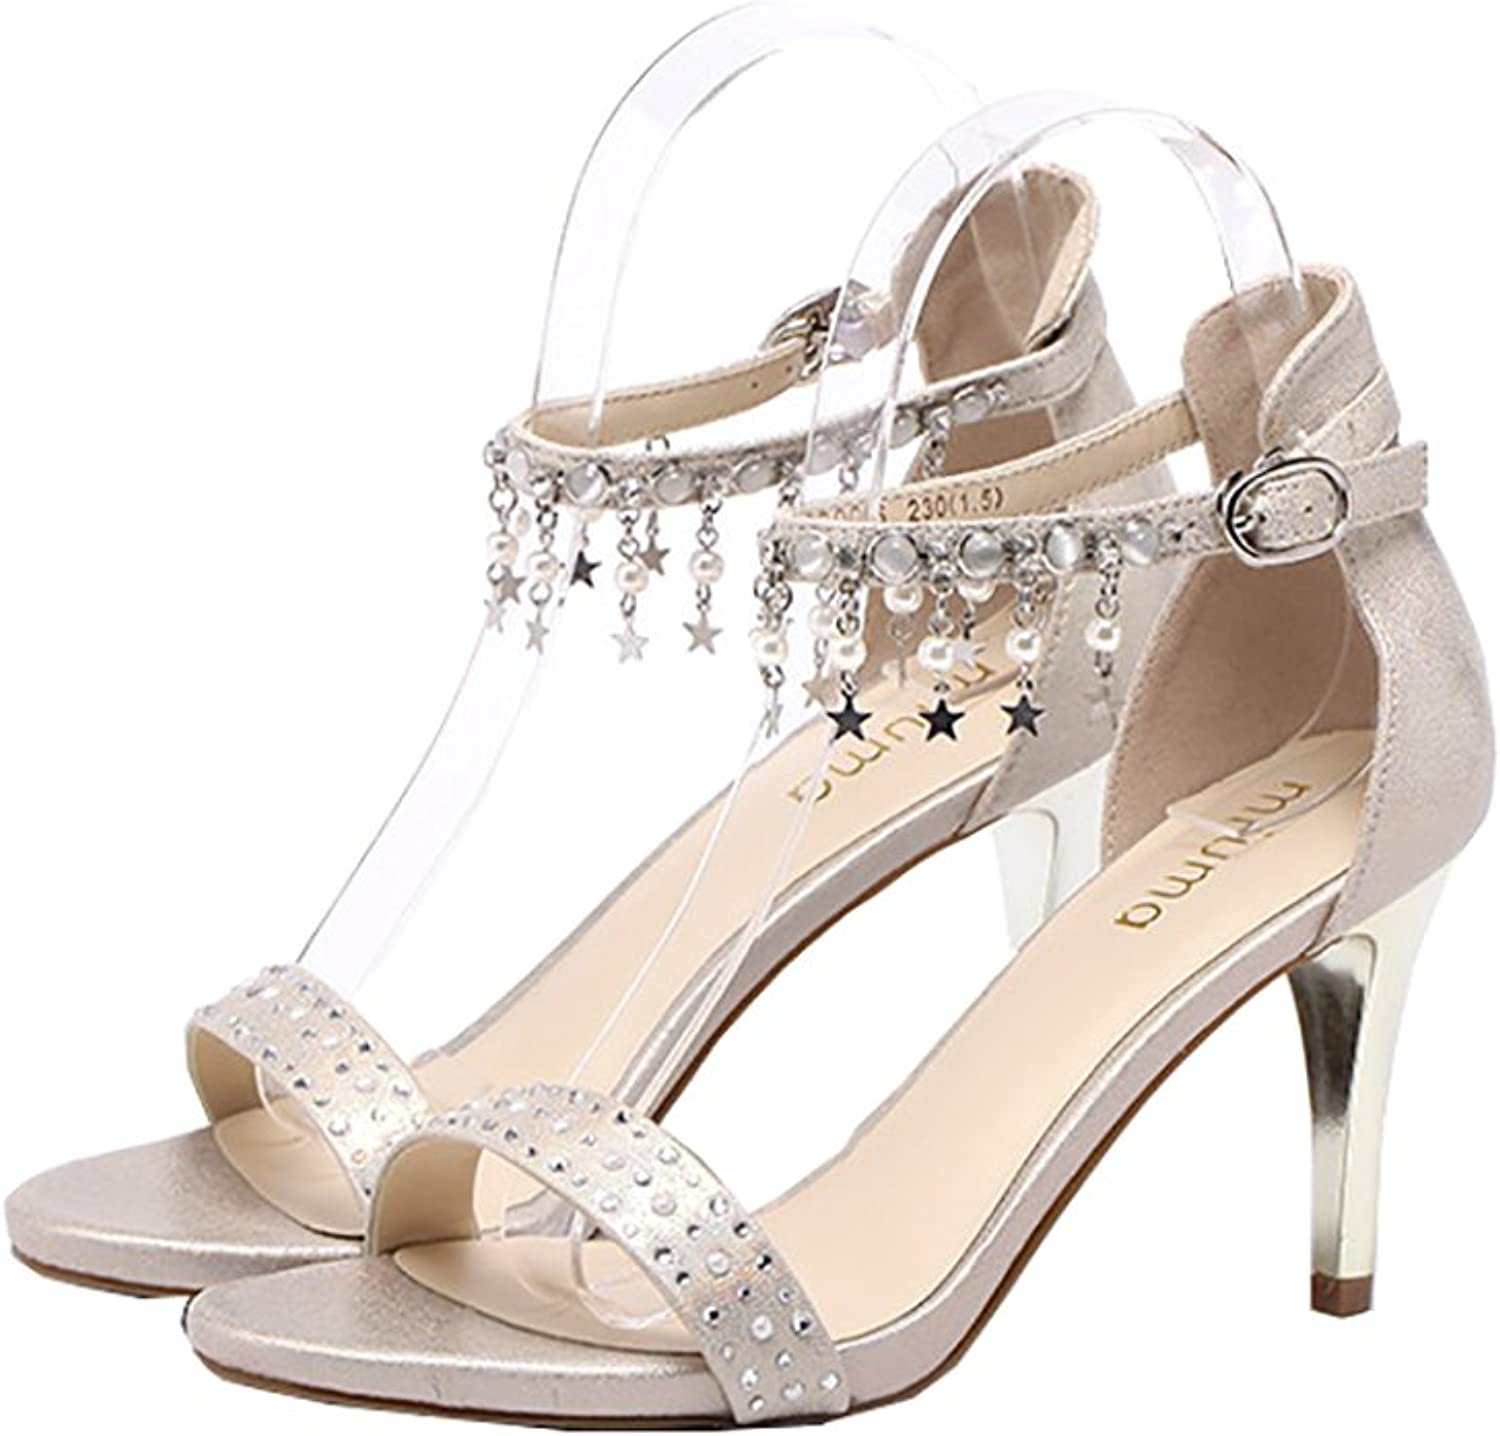 High-Heeled Sandal Women Leather shoes Office Worker Tassels Bead High Heel shoes (color   Beige, Size   37)